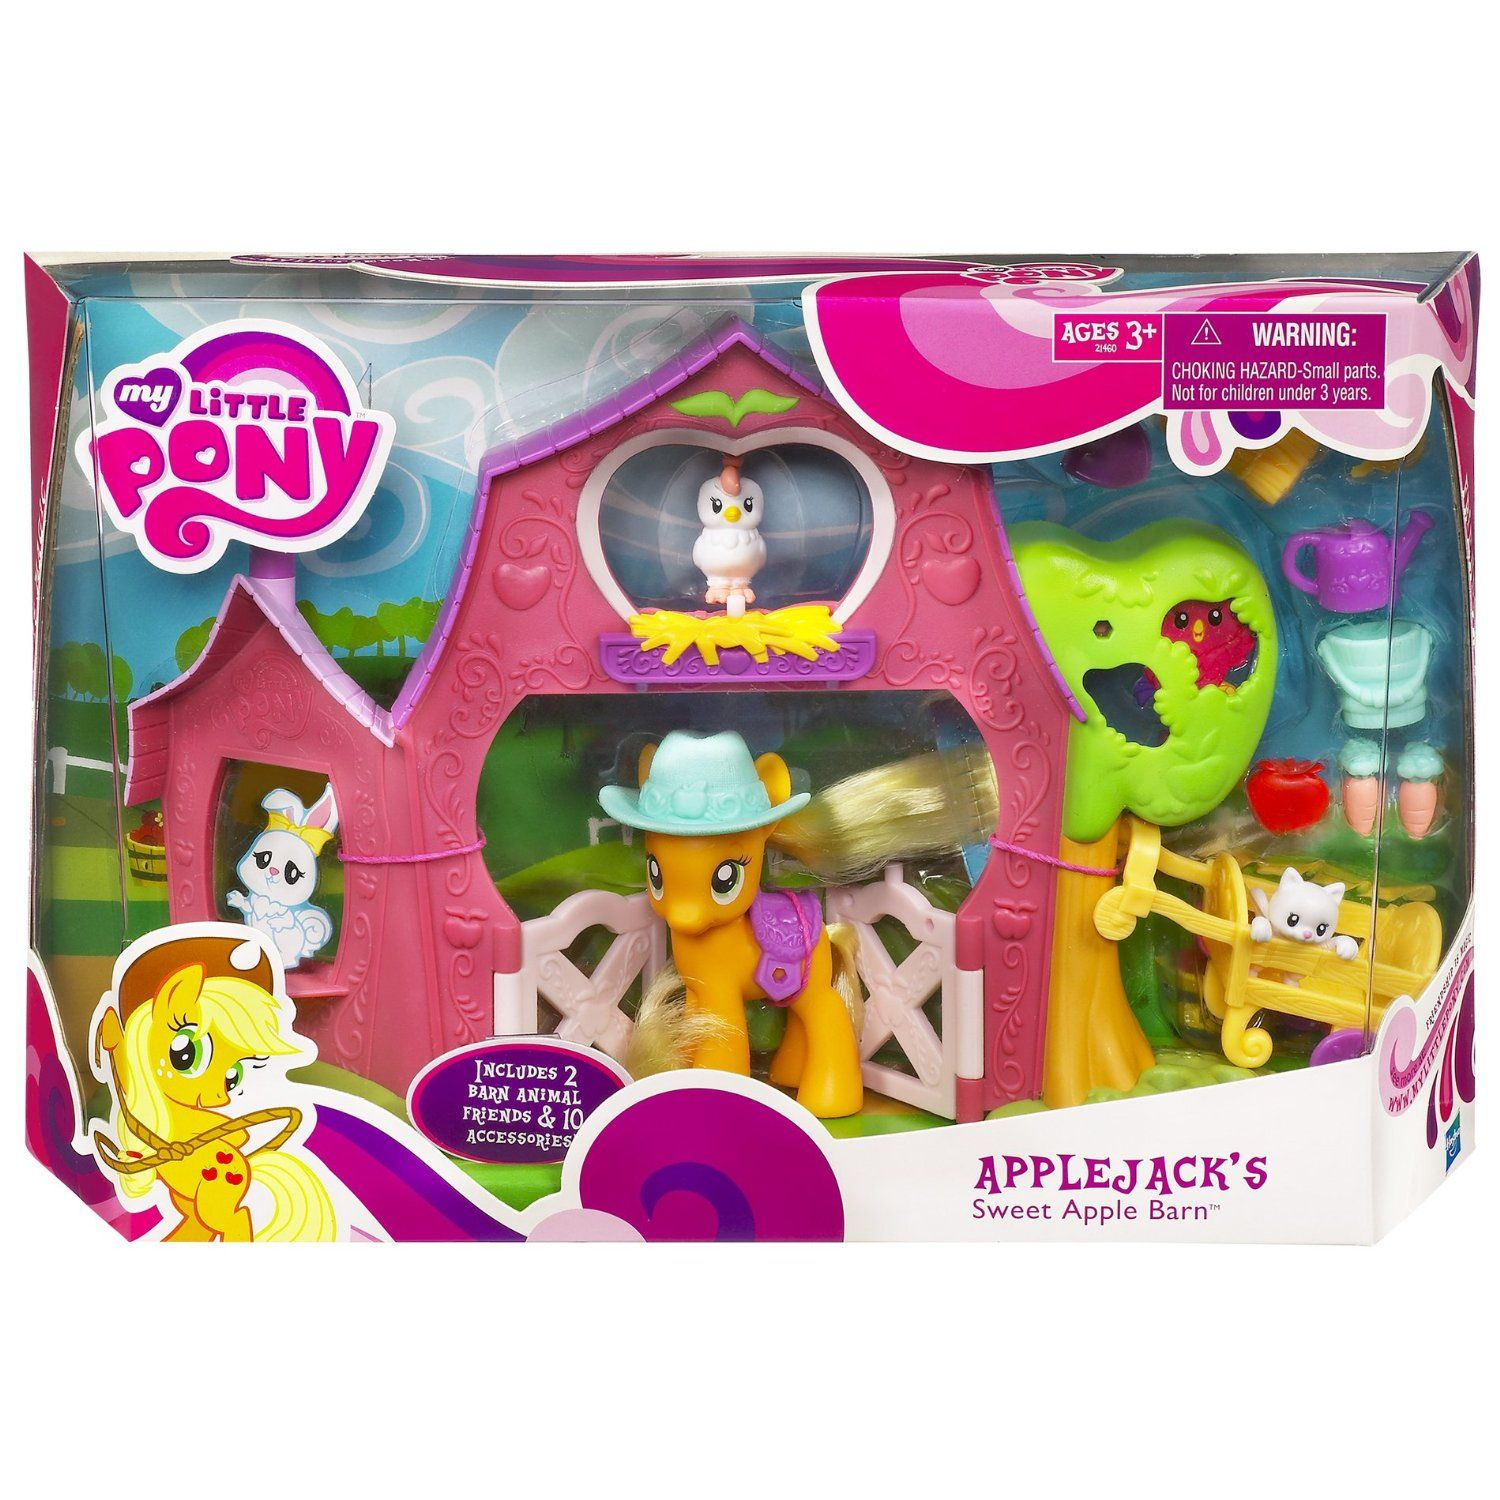 amazon: my little pony applejack's sweet apple barn playset